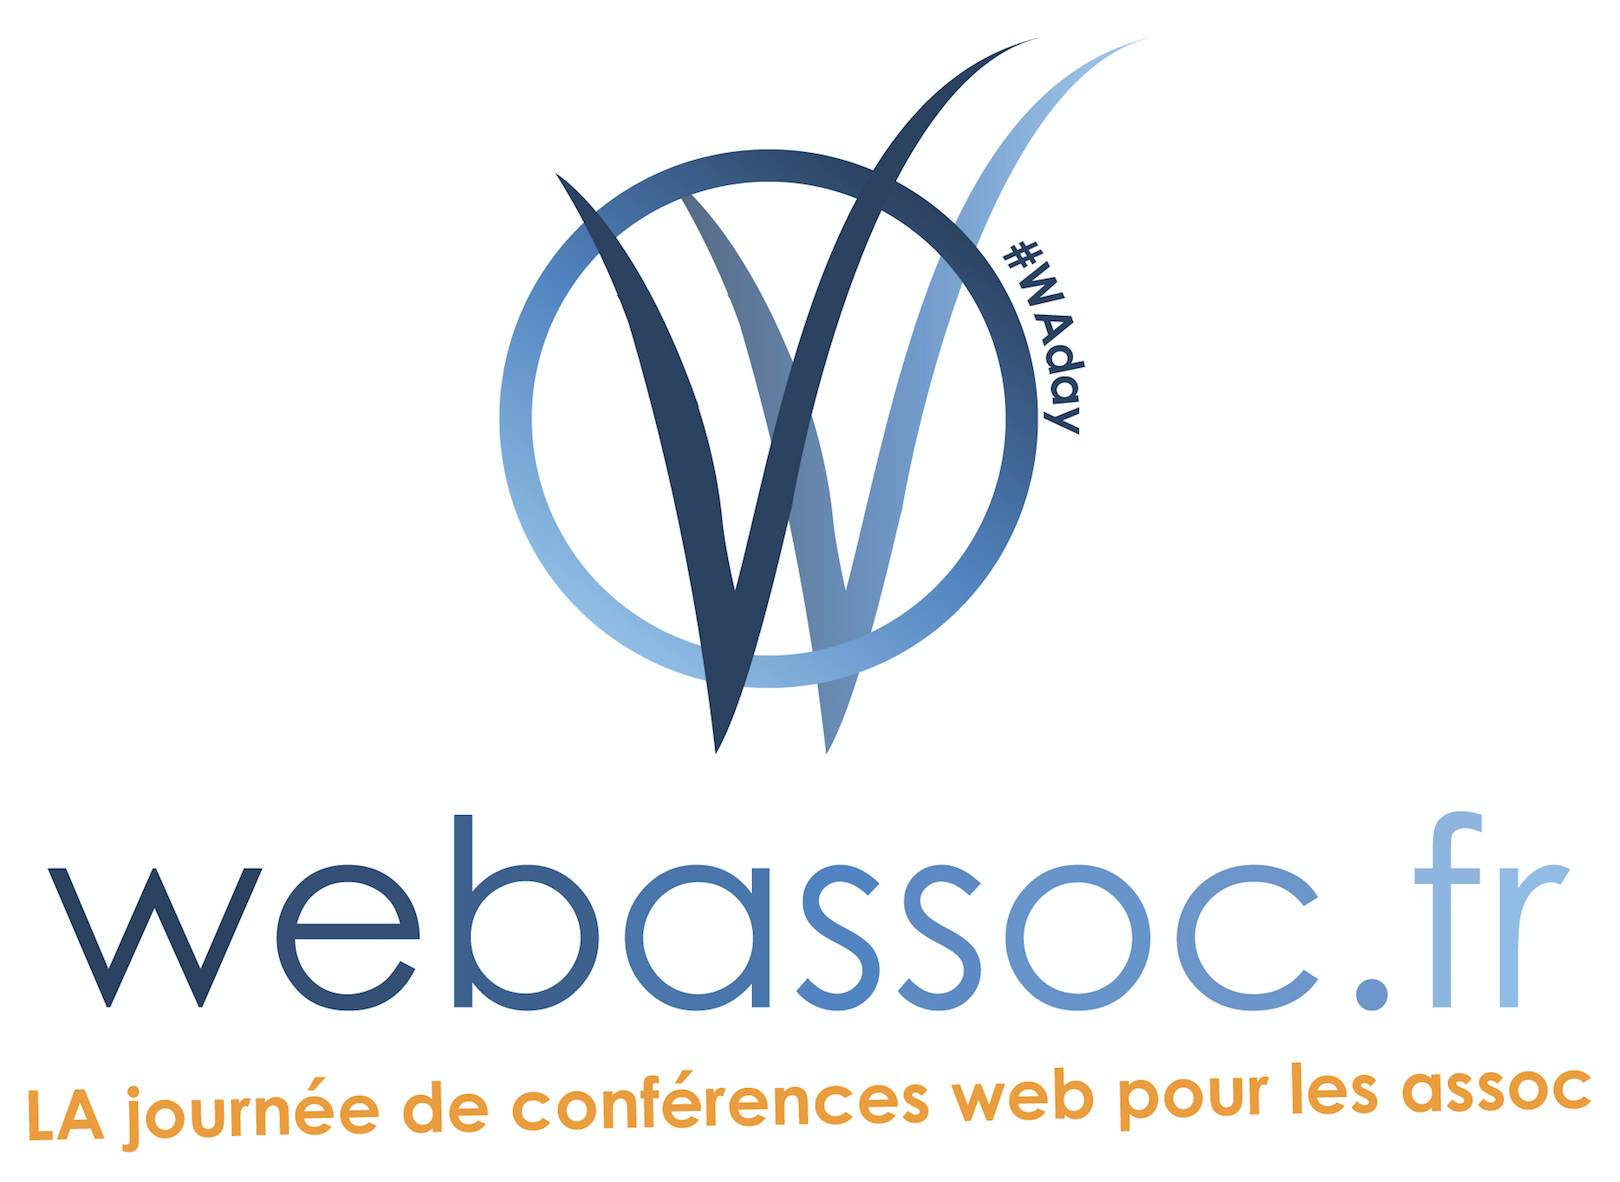 Journee Annuelle De Conferences Waday Mobilisez Avec Internet